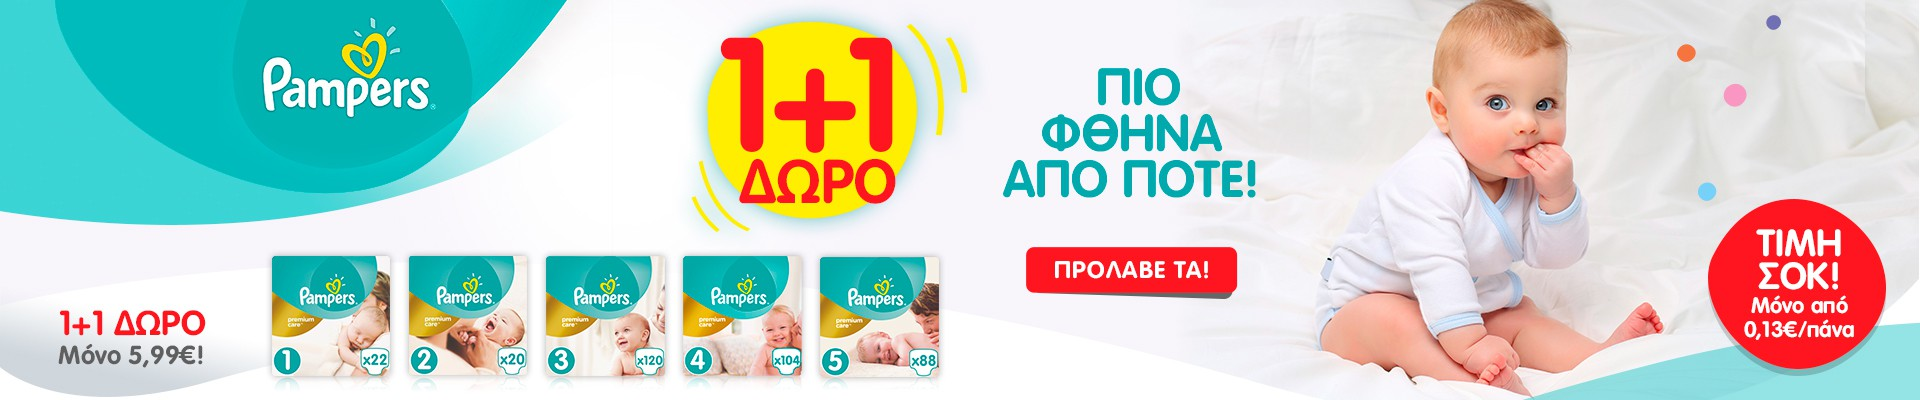 Pampers 1+1 15/5/18